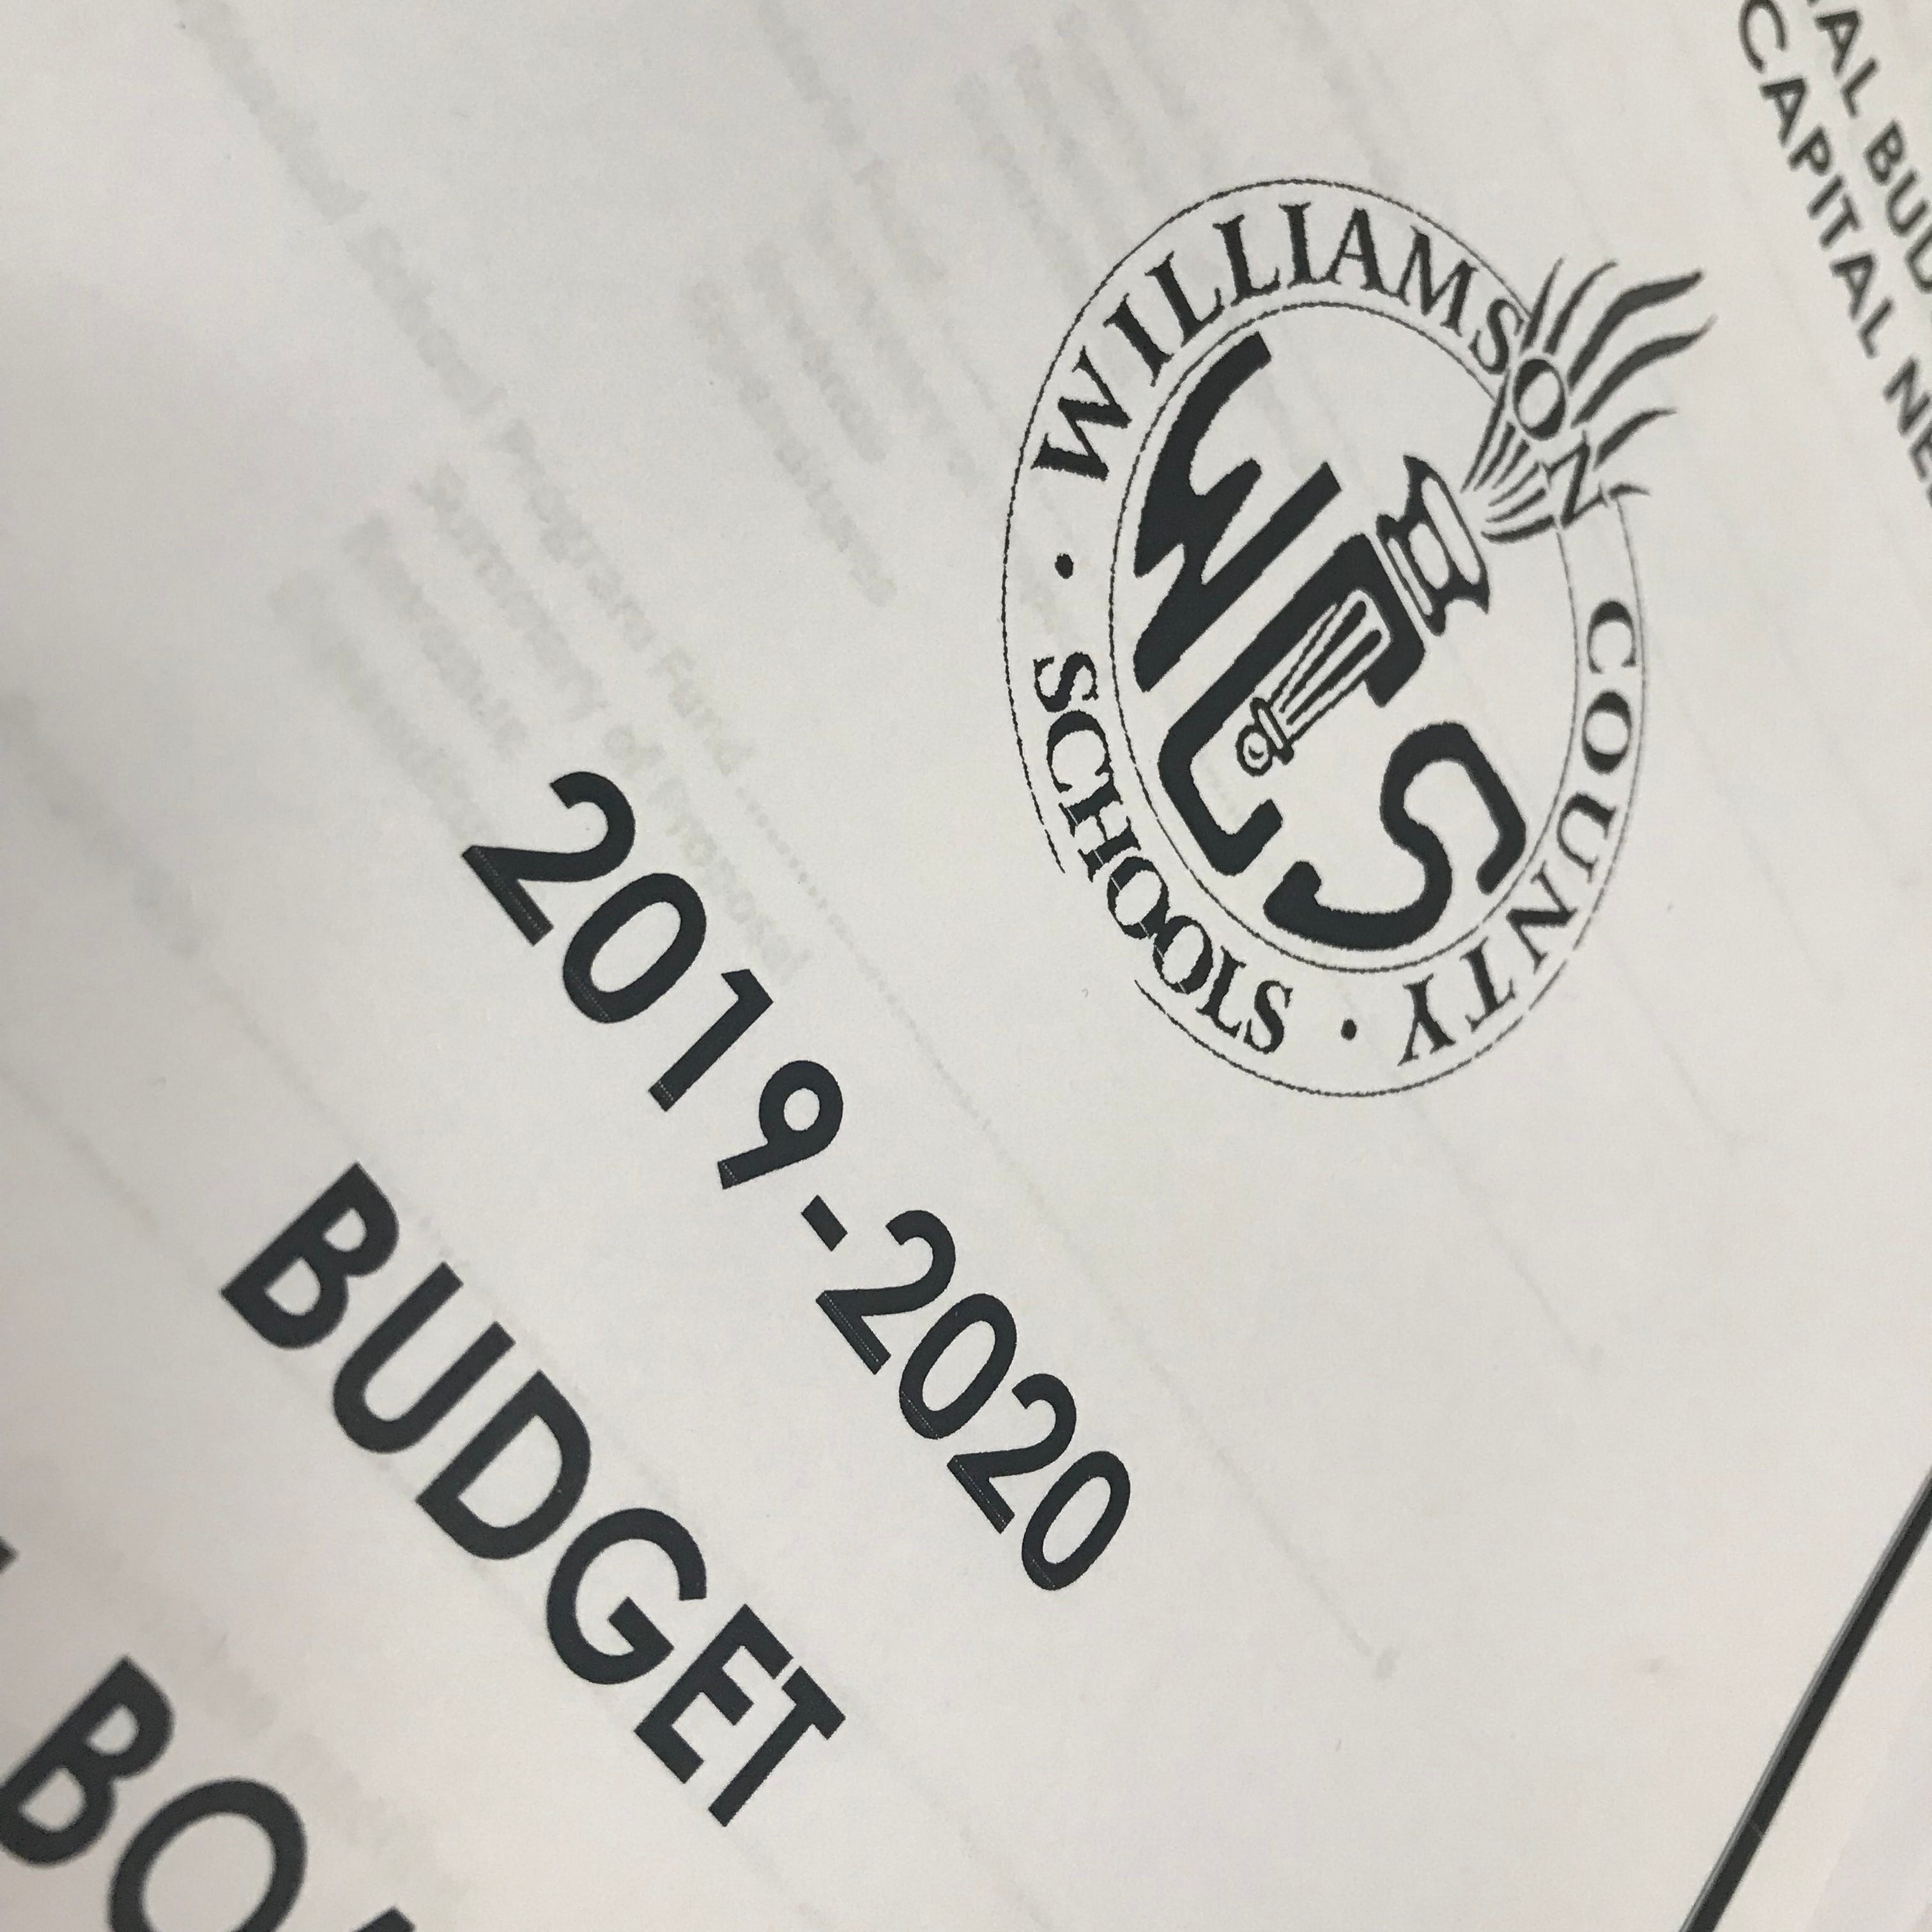 Williamson County Schools leaders unveiled the proposed 2019-20 budget Thursday.